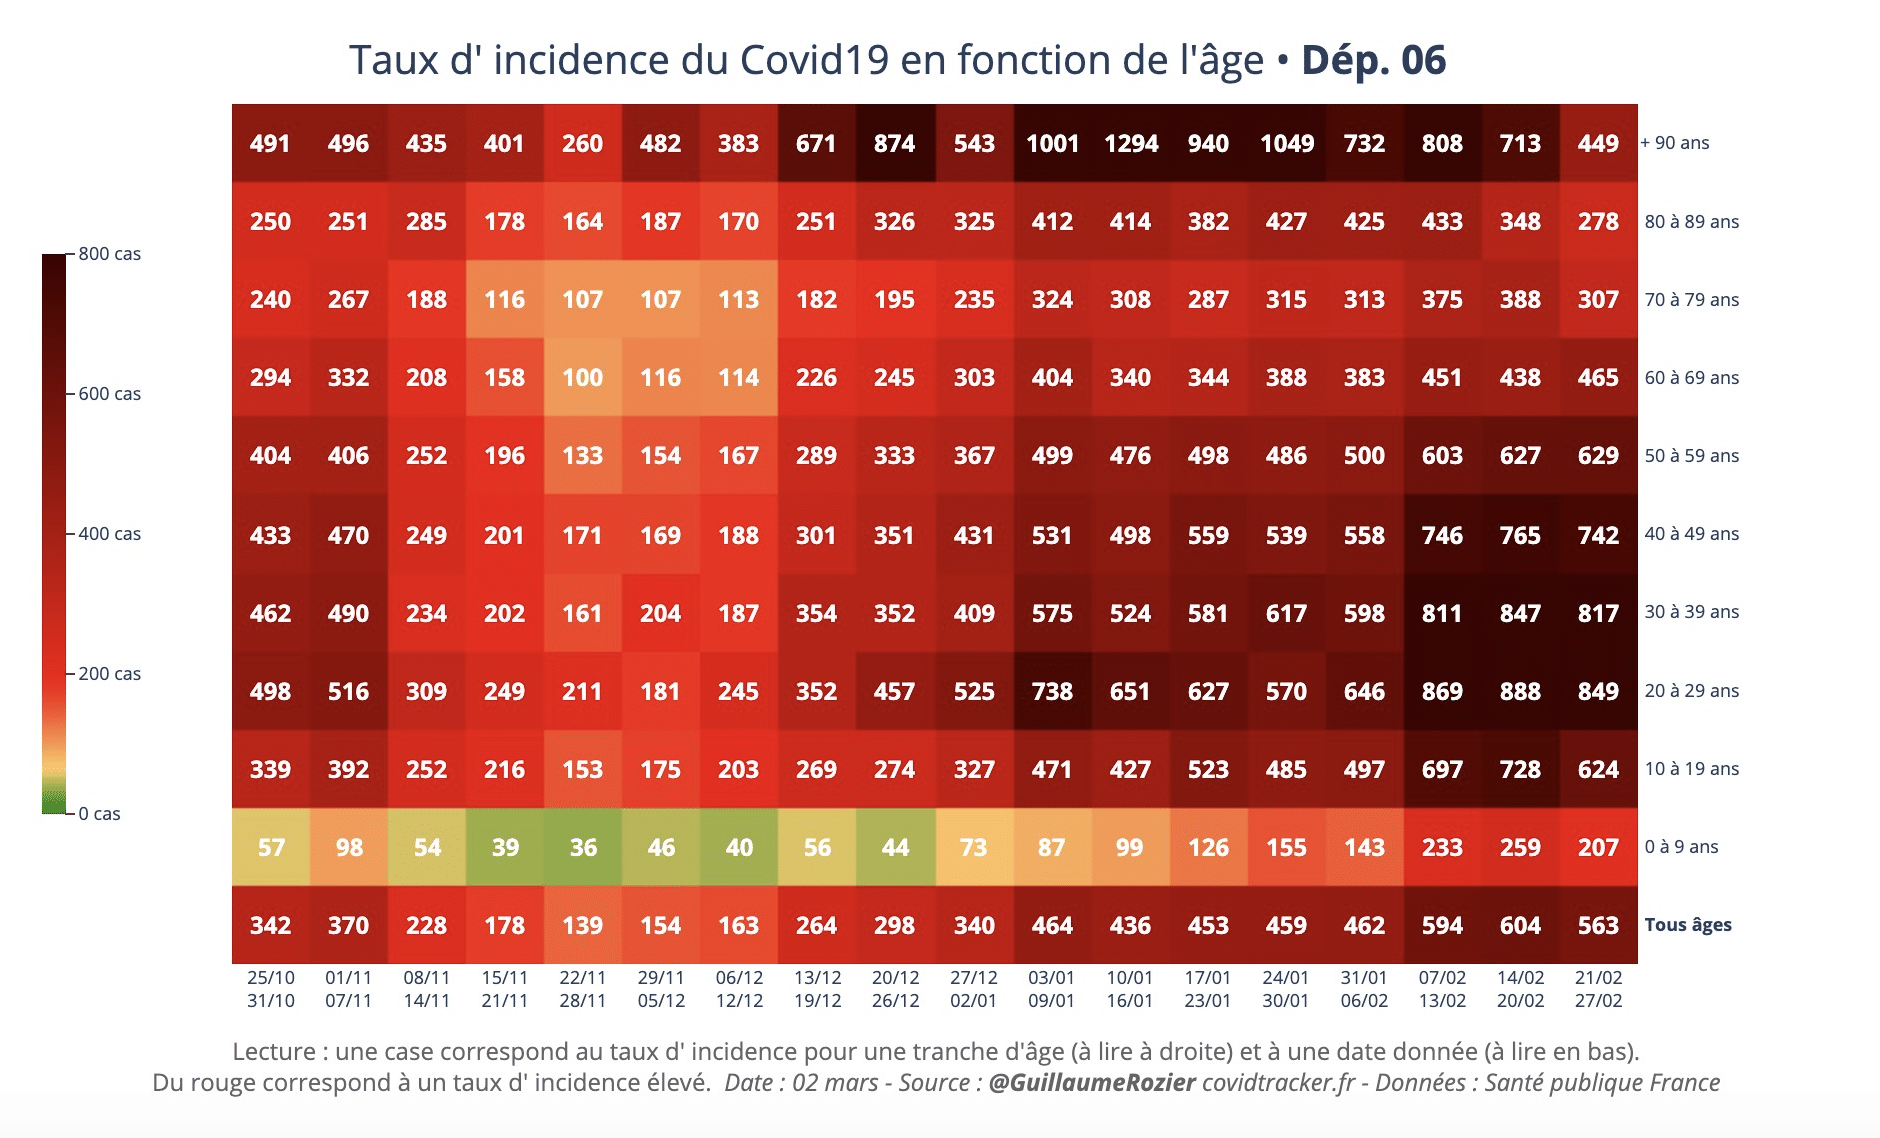 taux d'incidence nice alpes maritimes